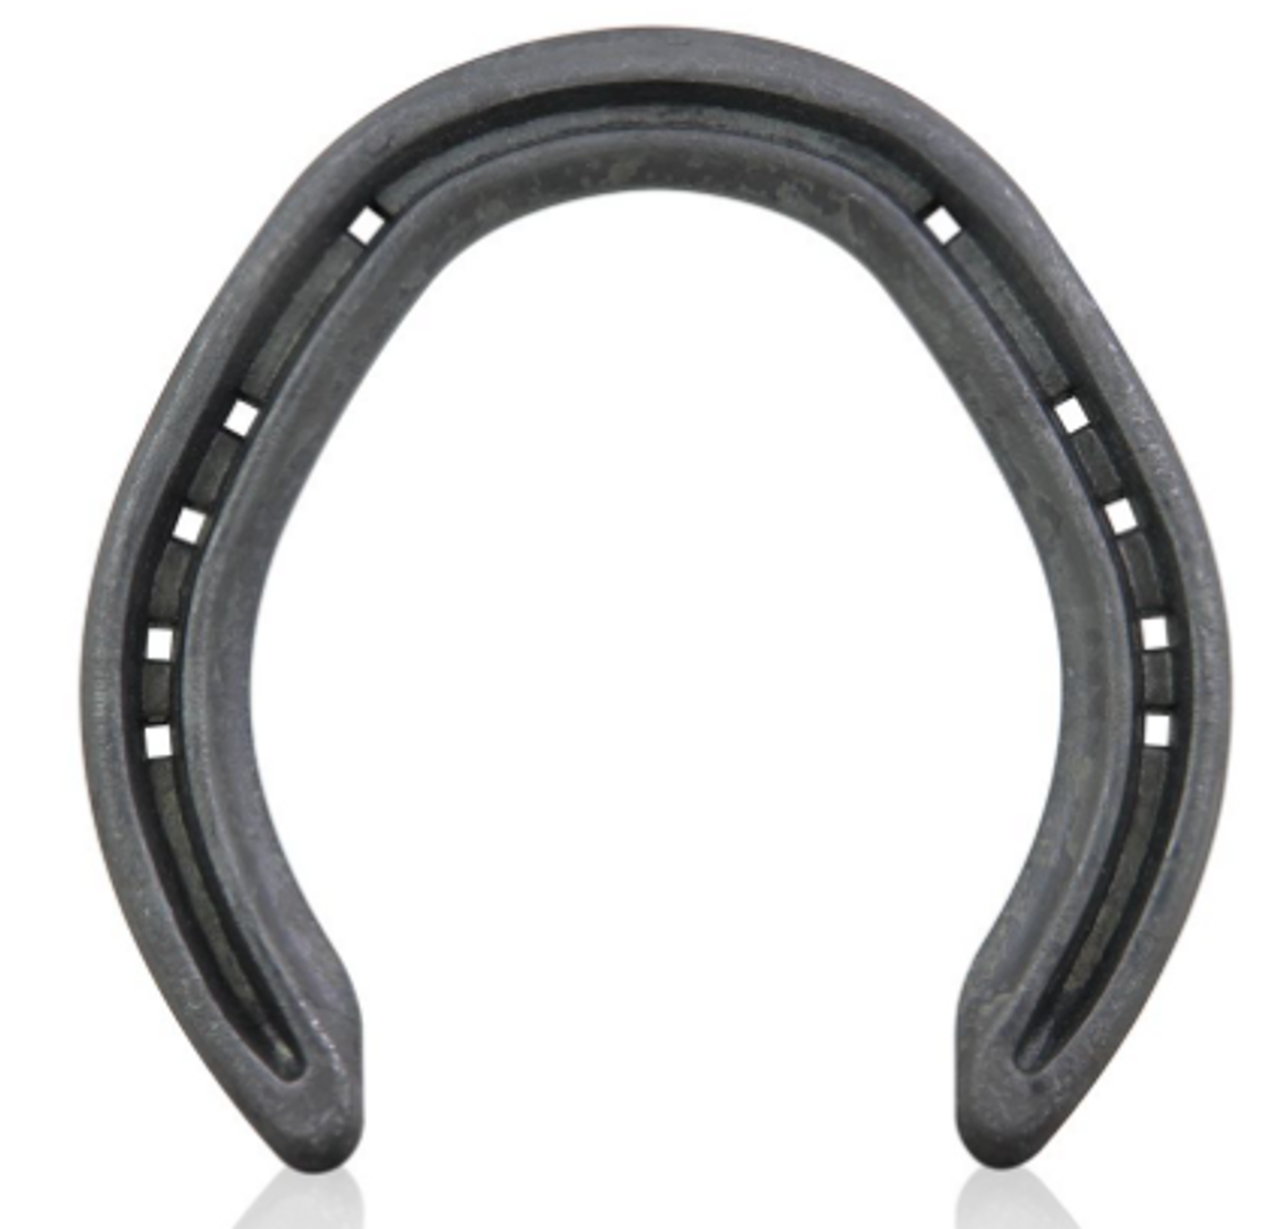 Malaysian Trainers Hind Toe Clip